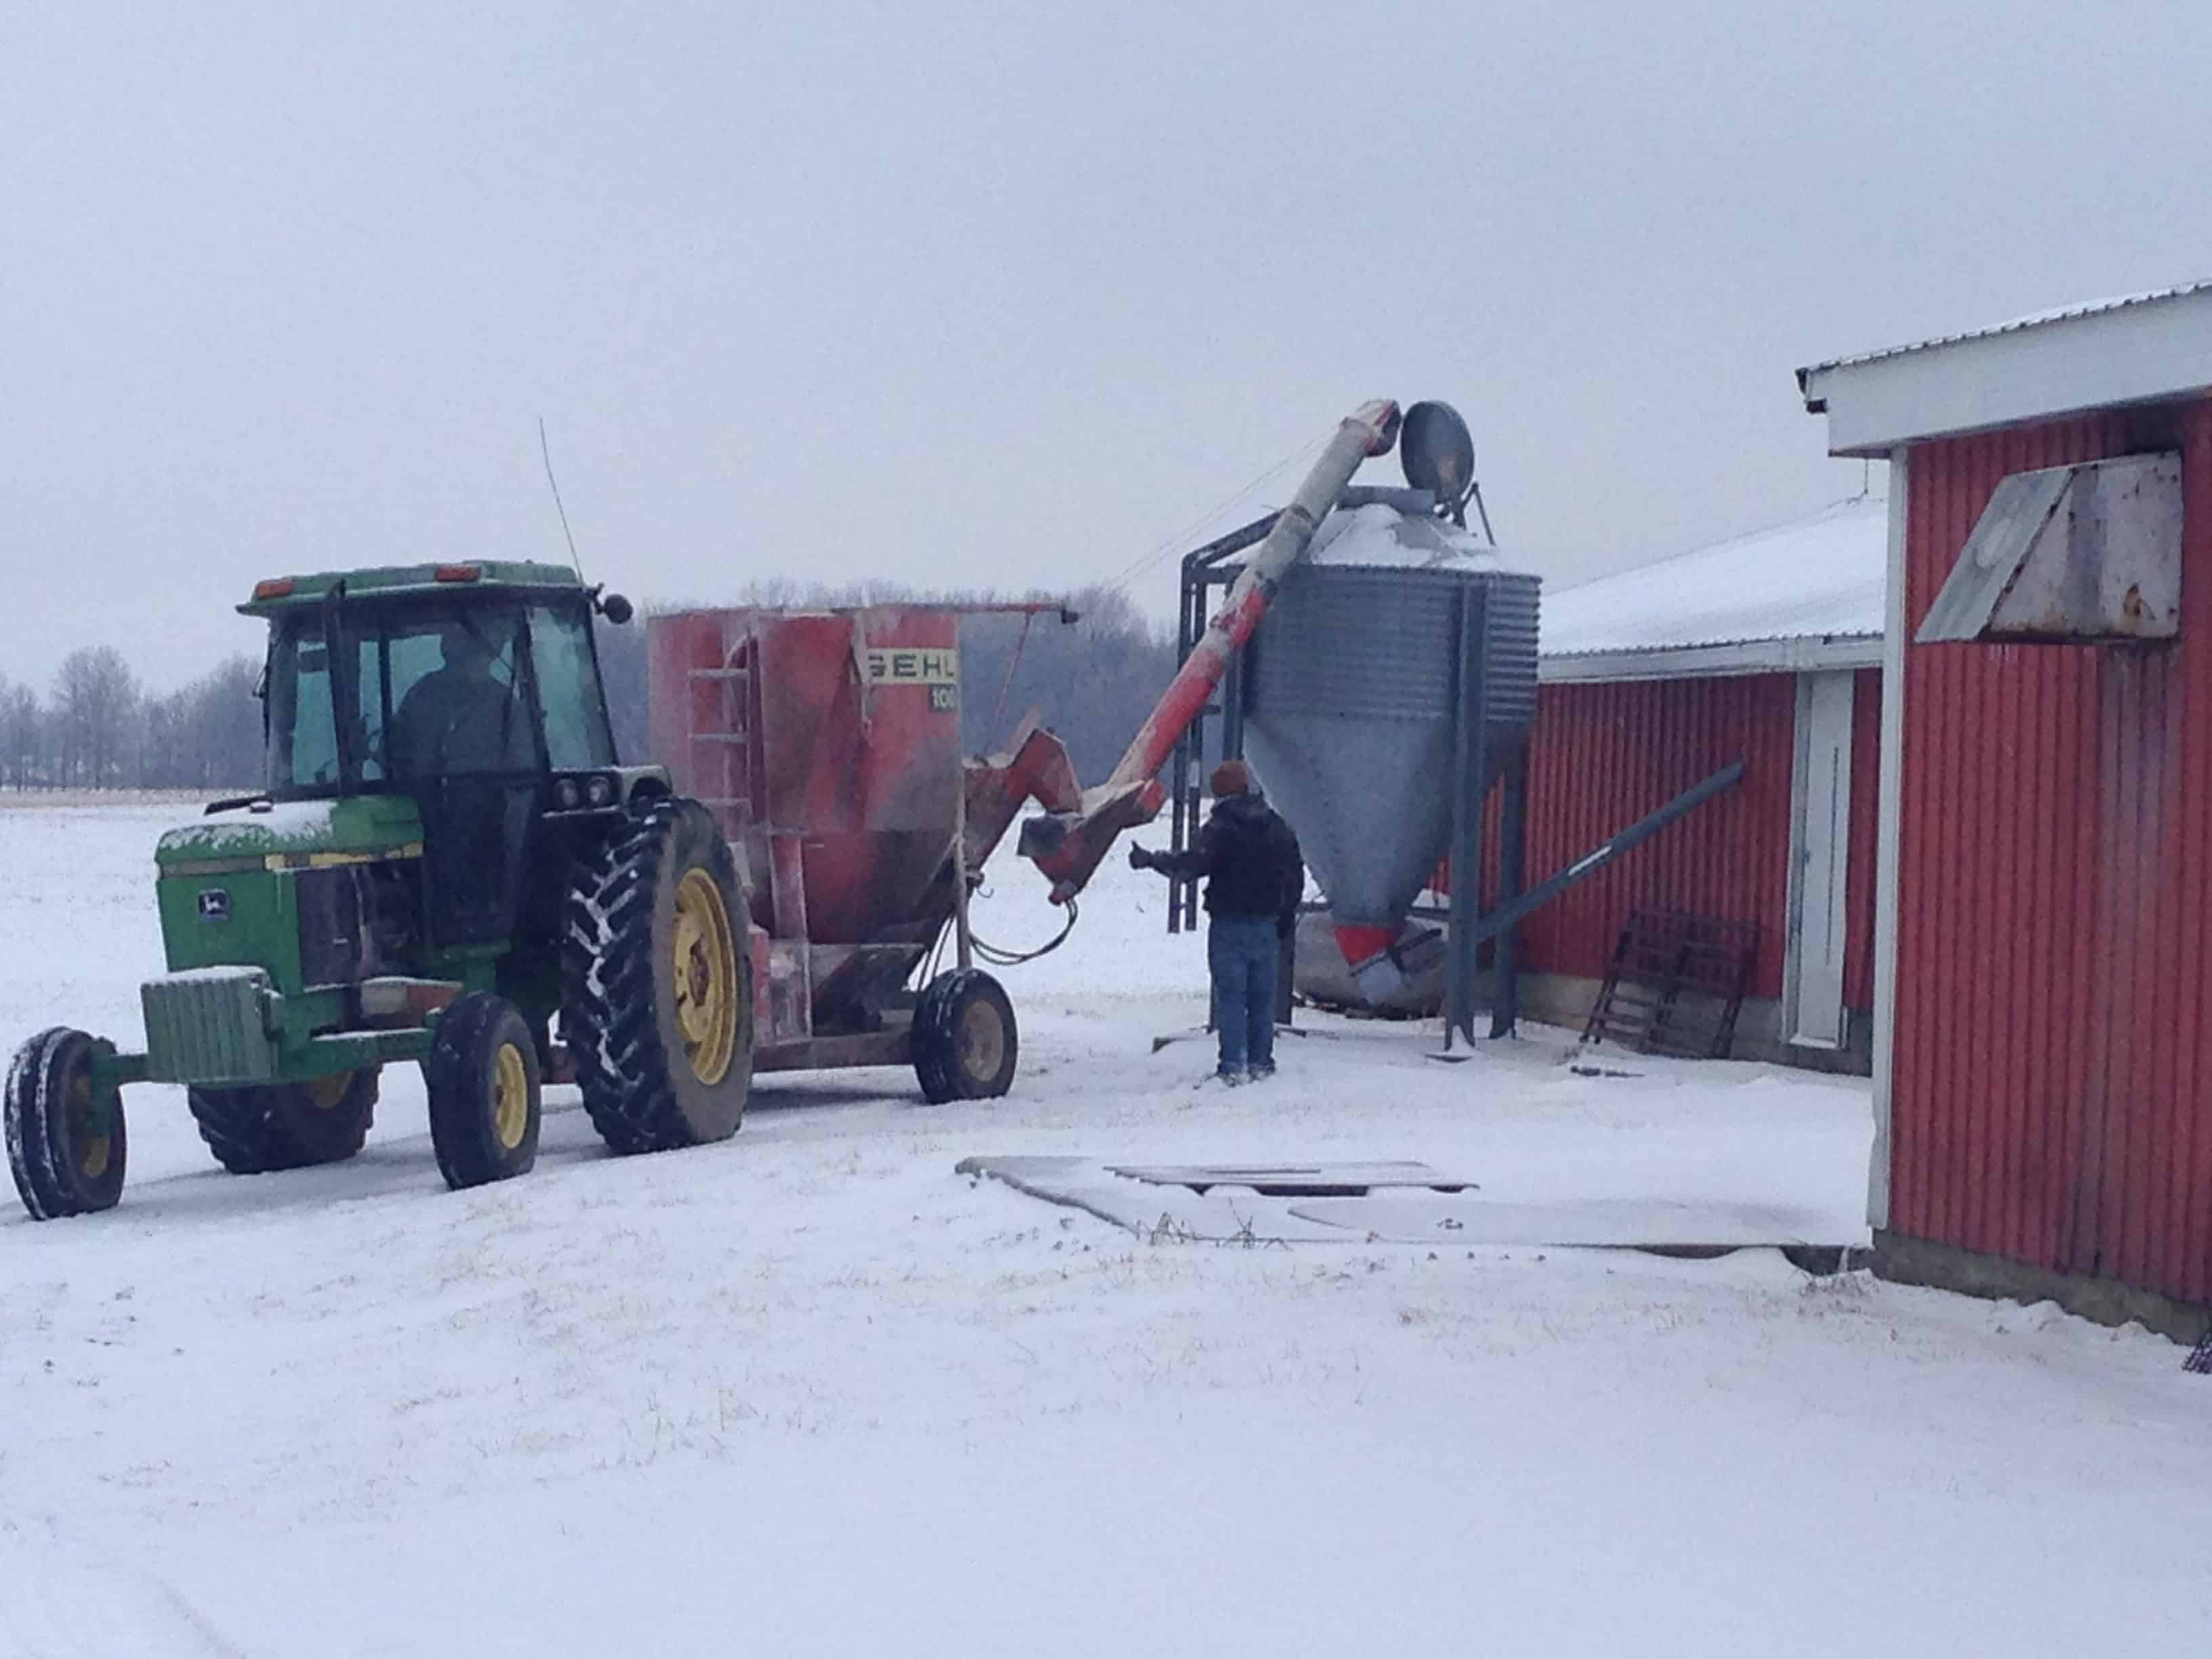 unloading feed from feed grinder